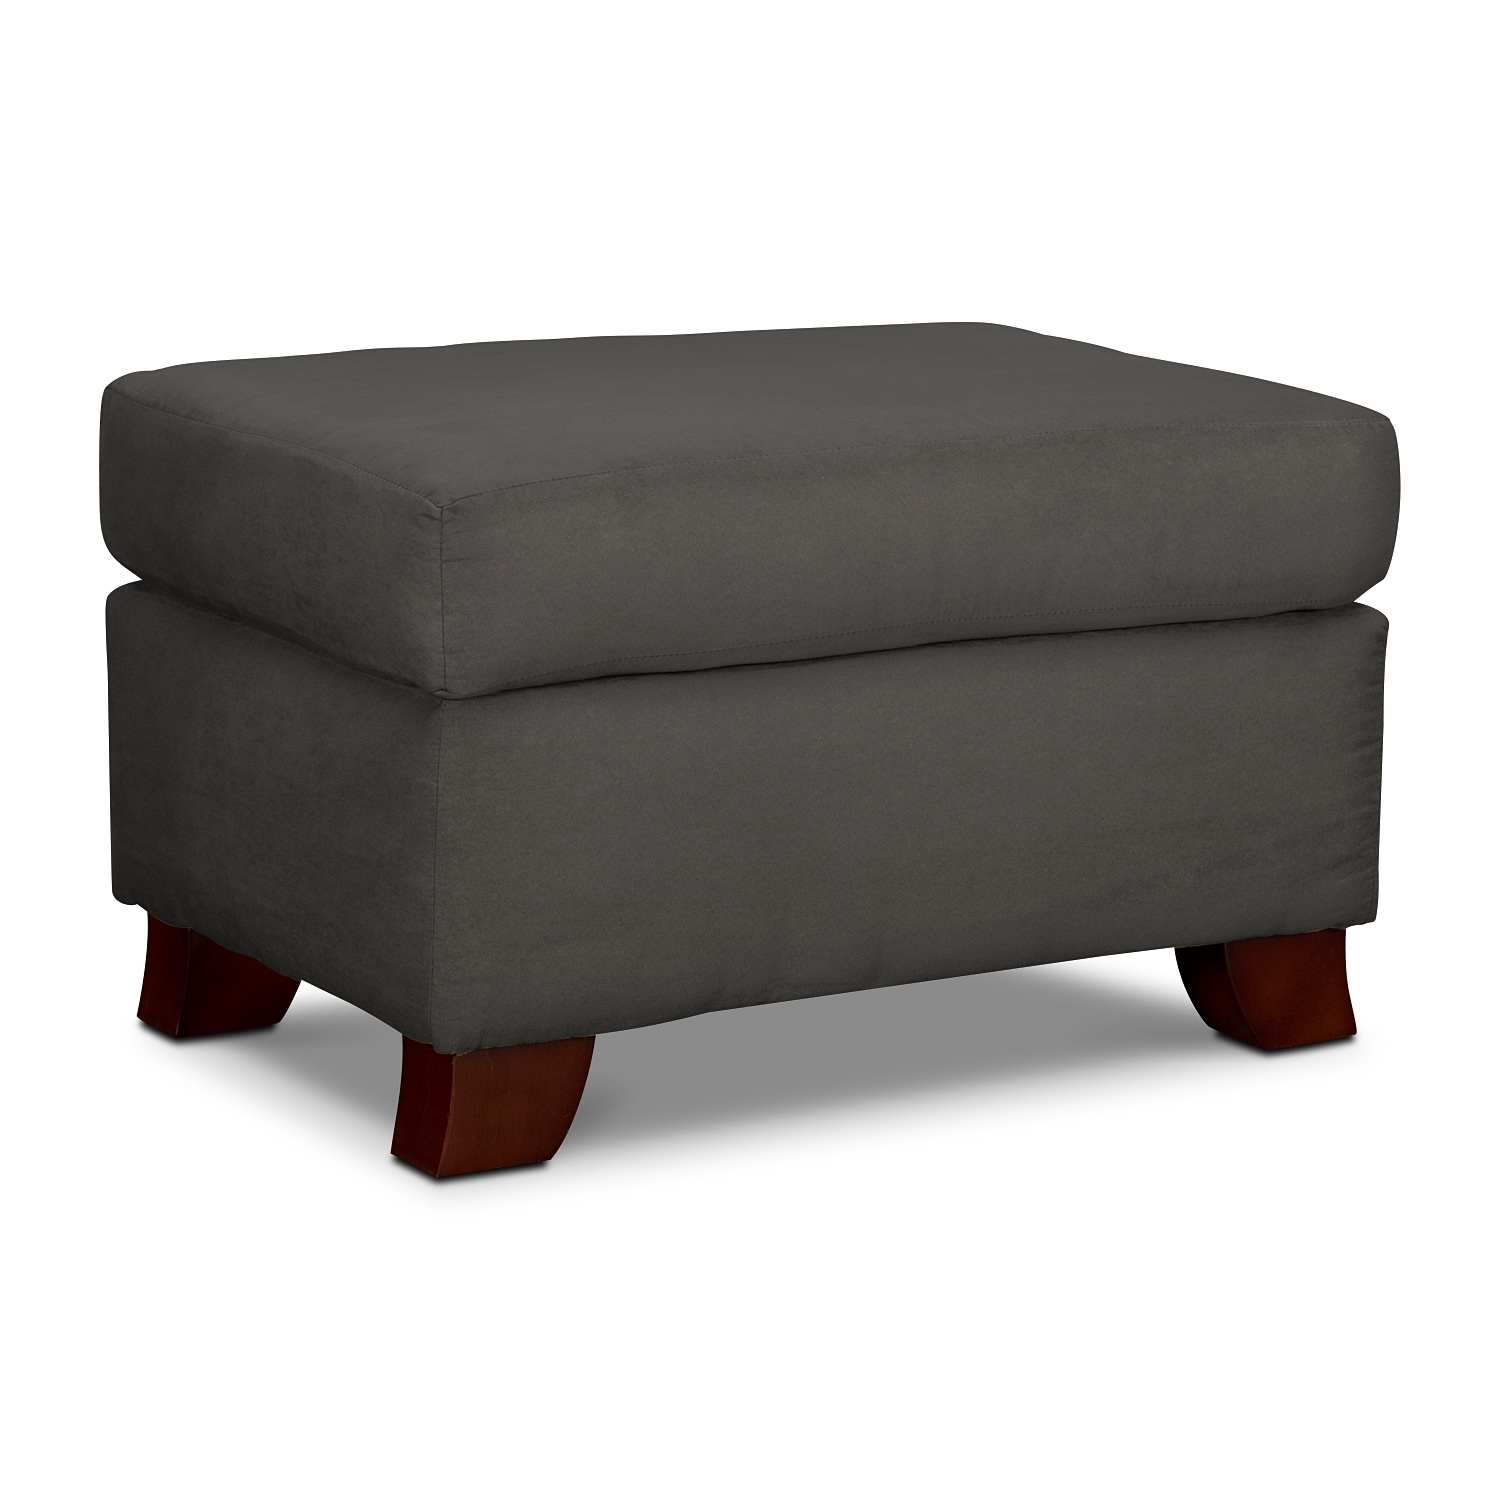 Living Room Furniture - Adrian Ottoman - Graphite